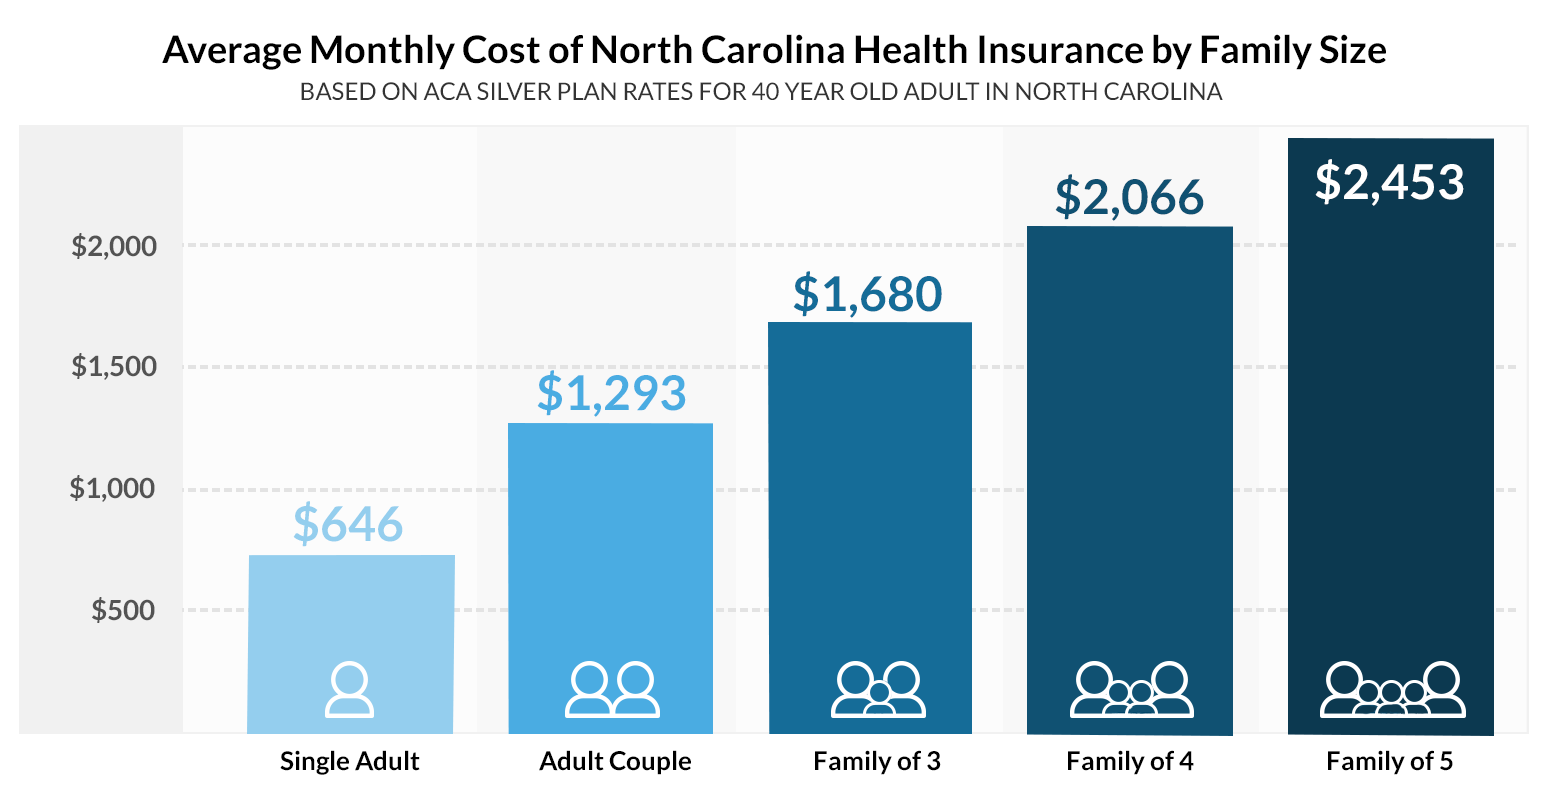 Cheap health insurance plans in North Carolina with other health insurance options. Compare affordable plans for any individual, family, or business budget. Get a free quote in a few minutes. Short term health insurance bridges the temporary gap to OEP and can be cancelled anytime.